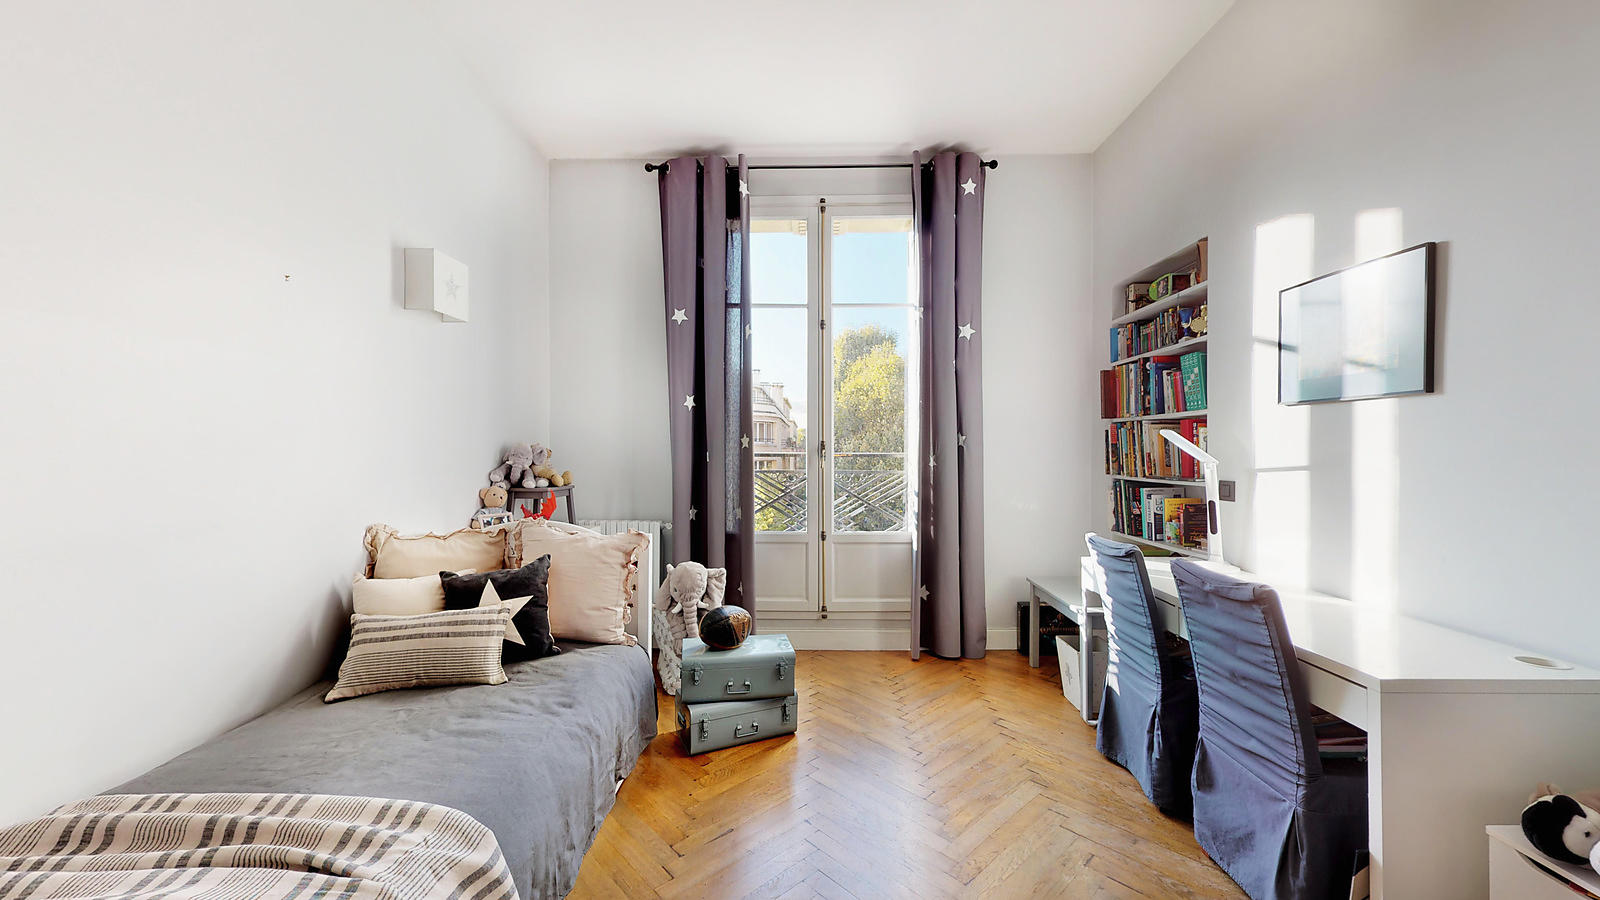 Appartement-Paris16-NF-10042019_143907_copie